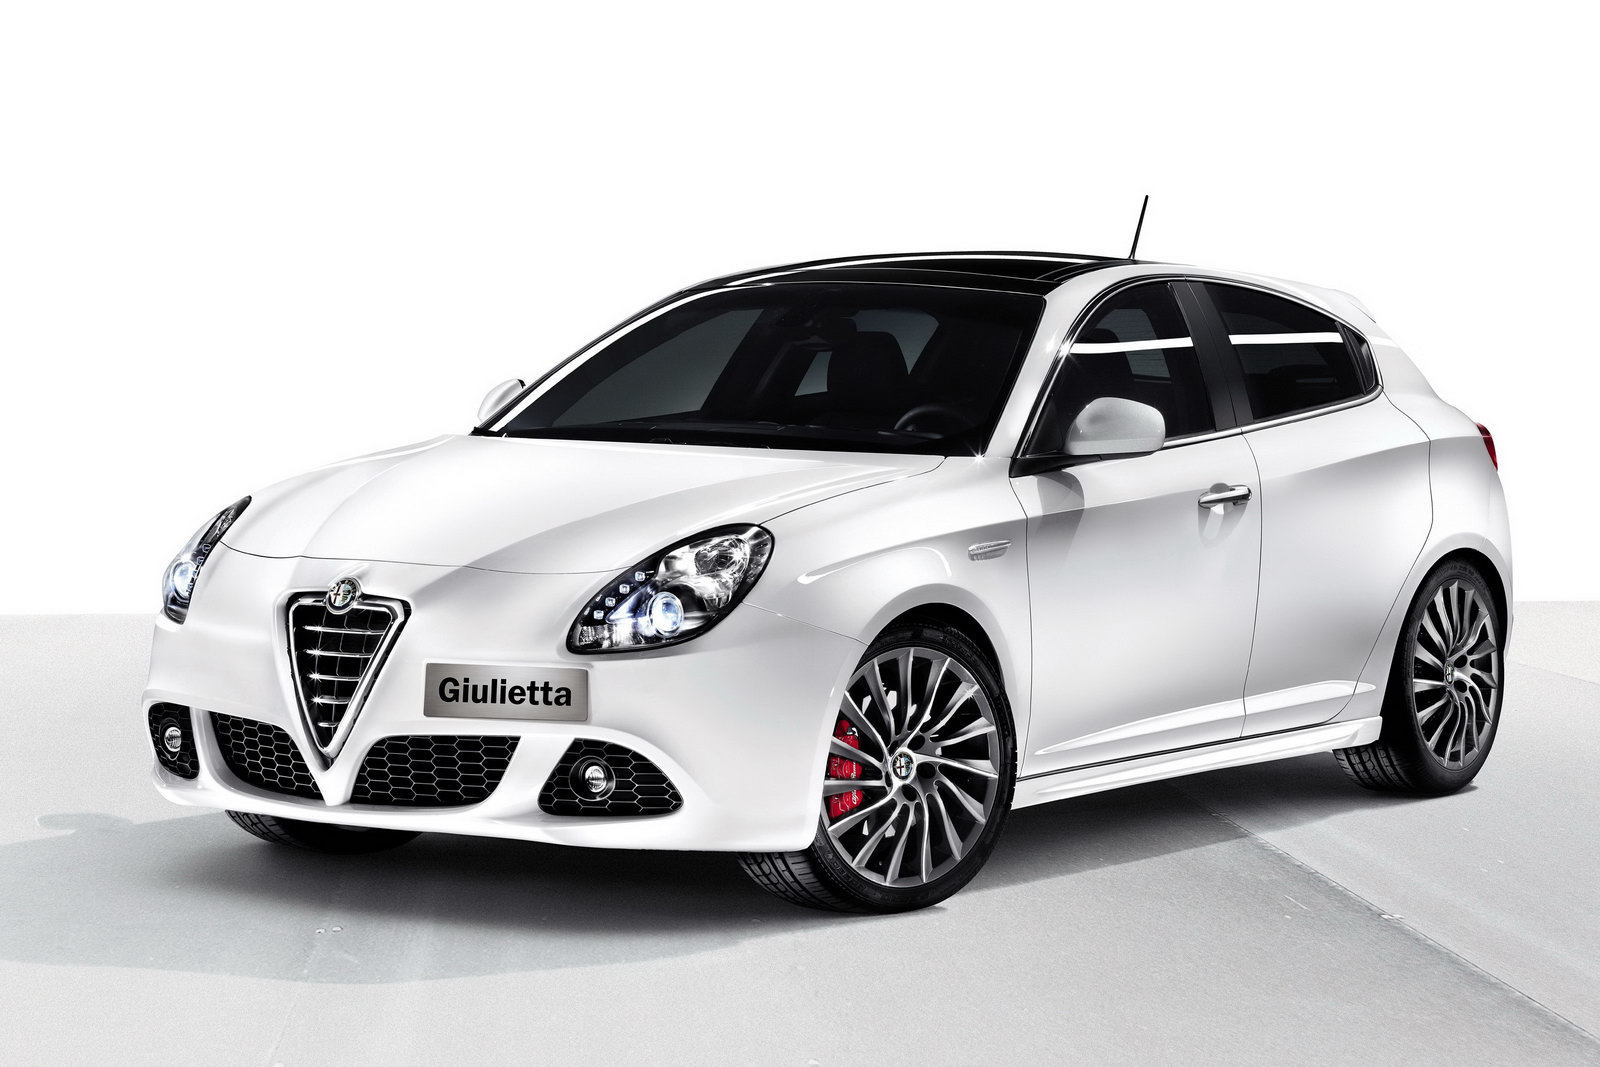 alfa romeo giulietta 1 4 turbo gpl 120cv giulietta gpl. Black Bedroom Furniture Sets. Home Design Ideas